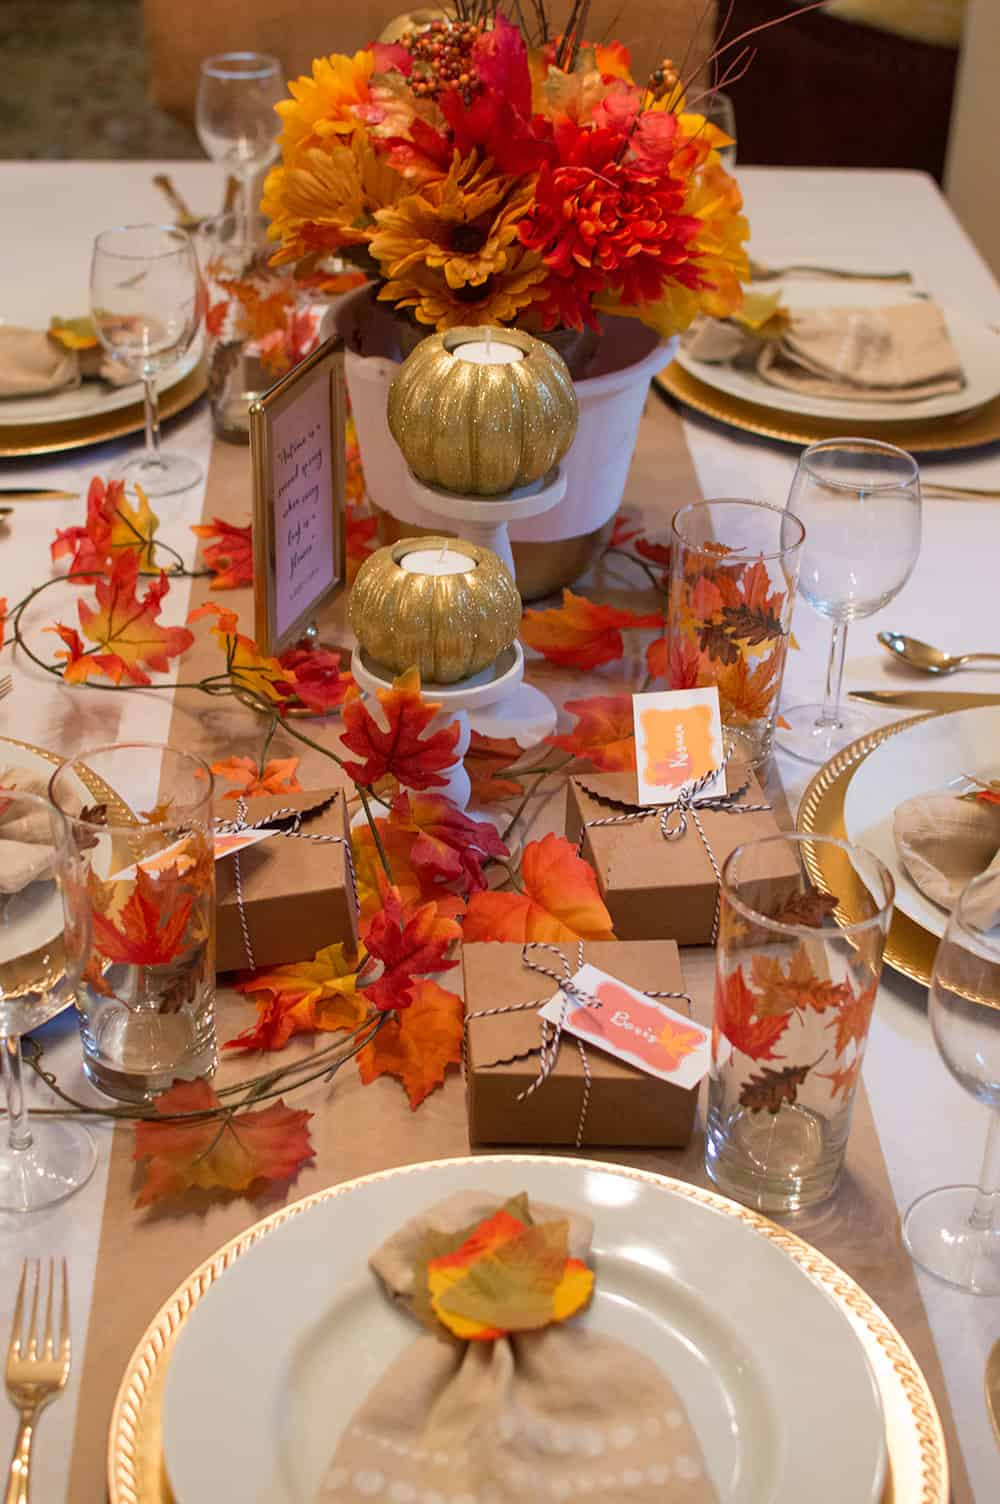 Festive Fall Tablescape for Thanksgiving